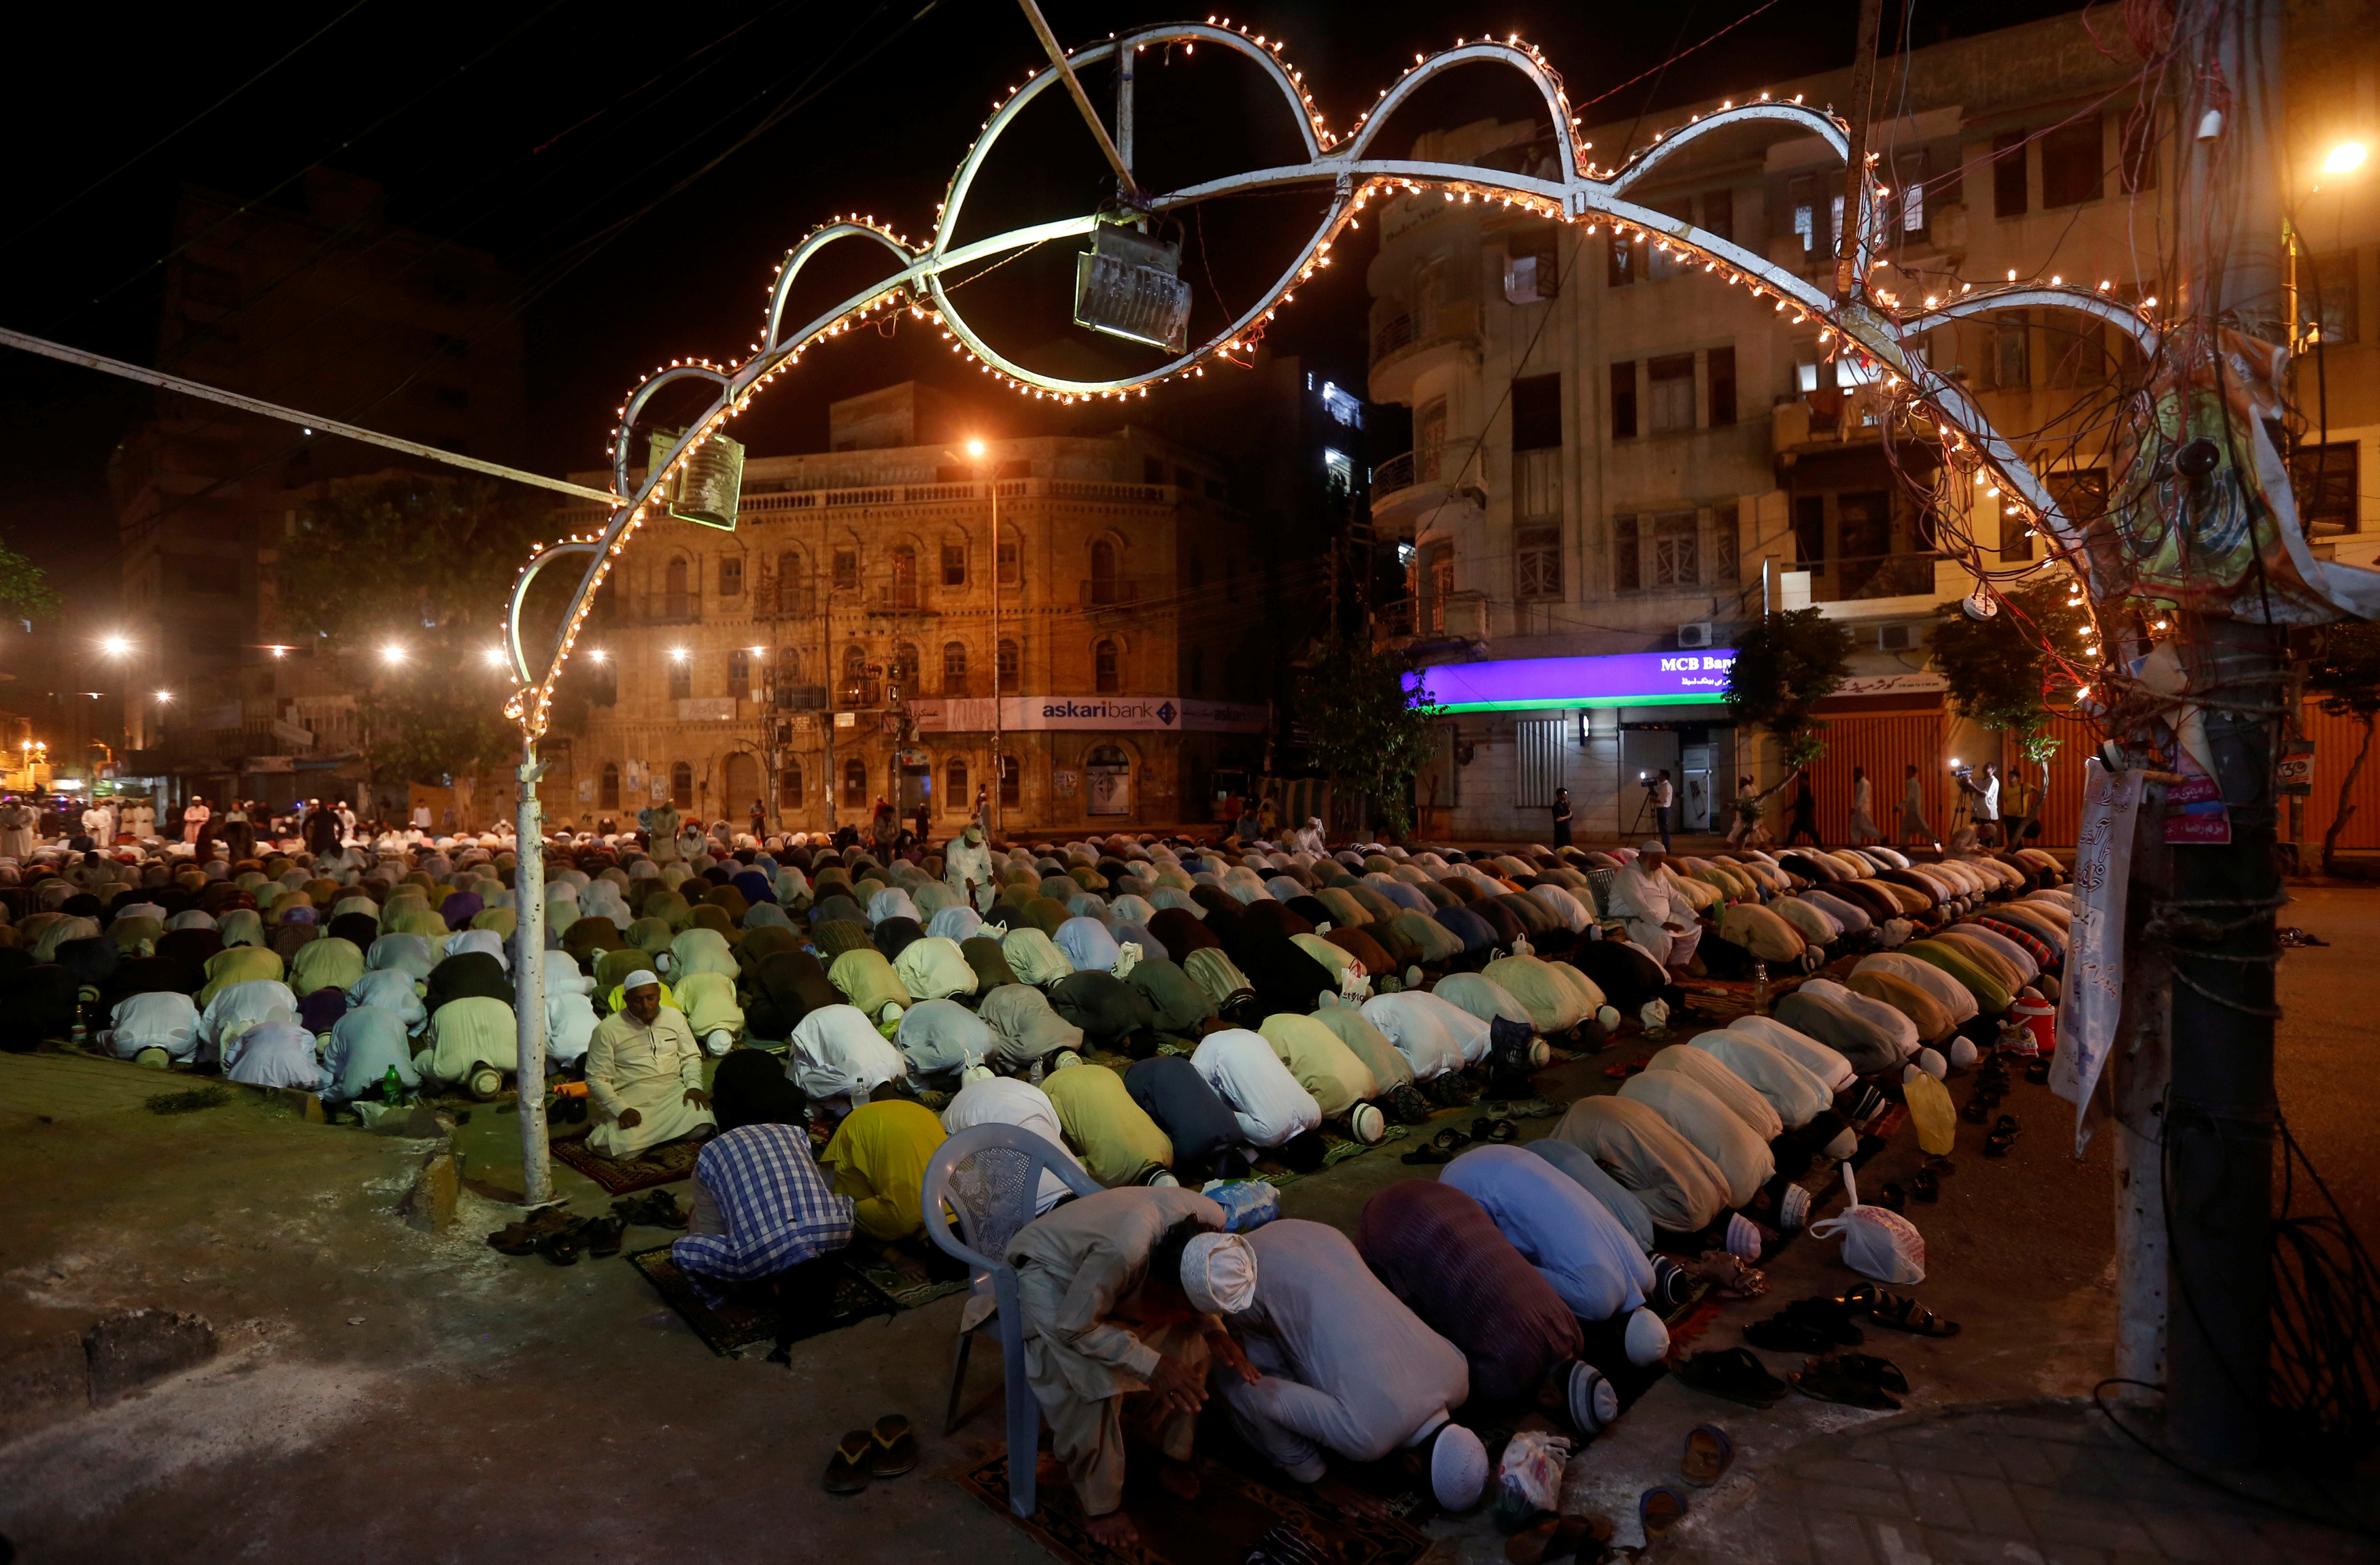 Men attend an evening mass prayer session called tarawih along a road to mark the fasting month of Ramadan in Karachi, Pakistan, May 27, 2017.